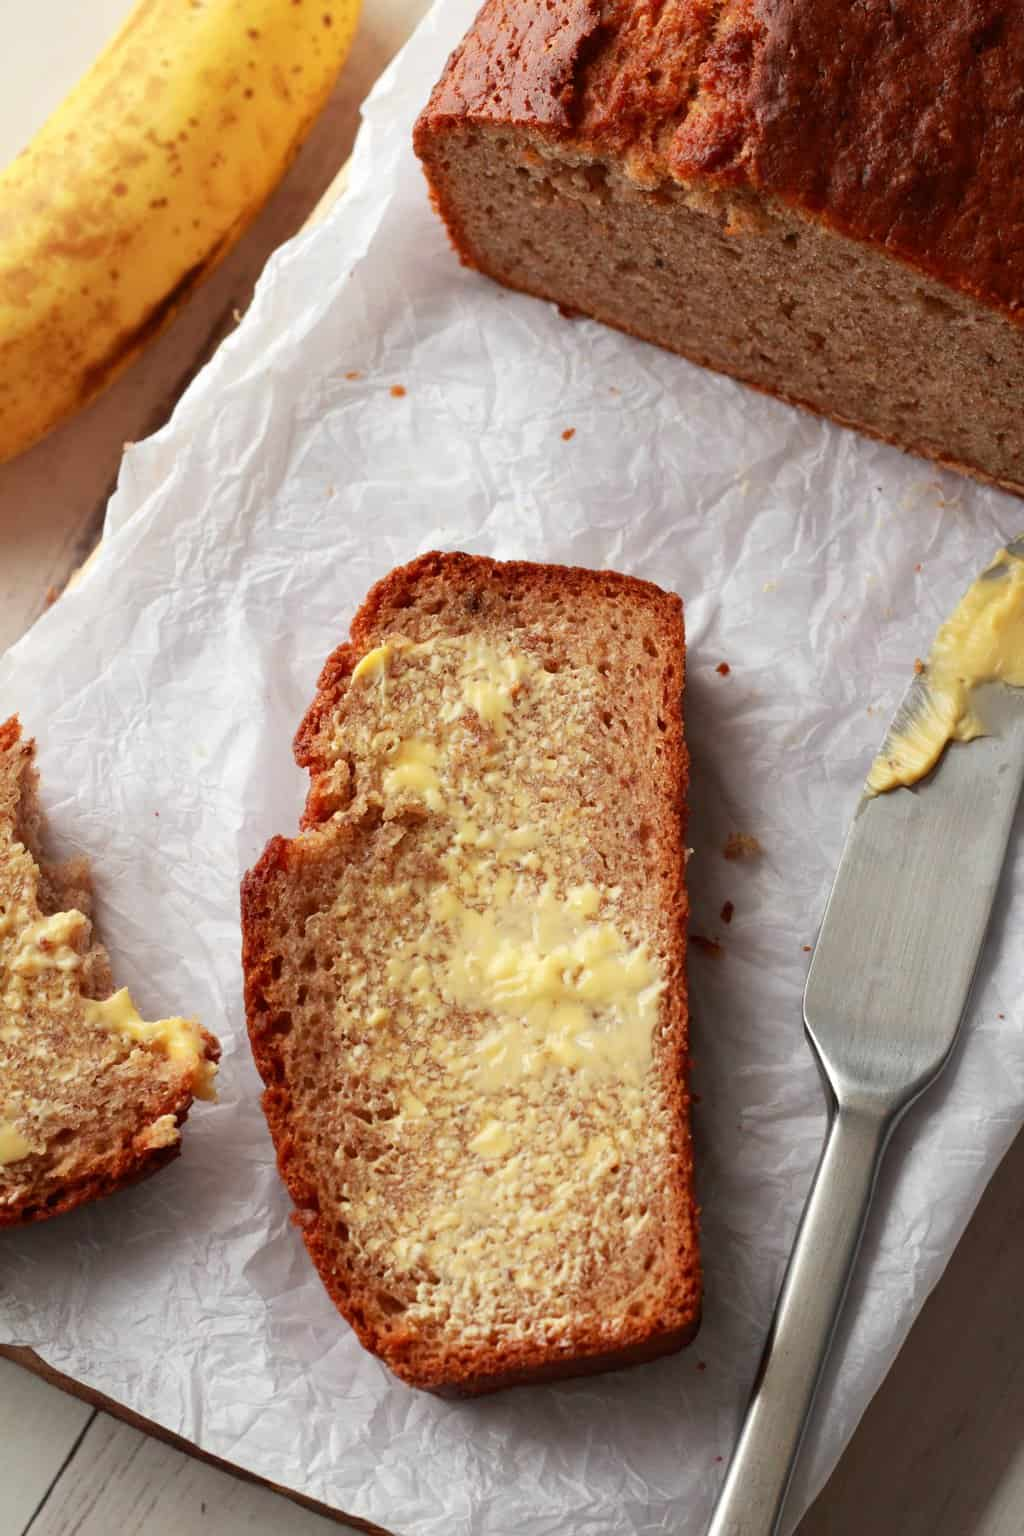 Sliced and buttered vegan banana bread with a butter knife next to it.